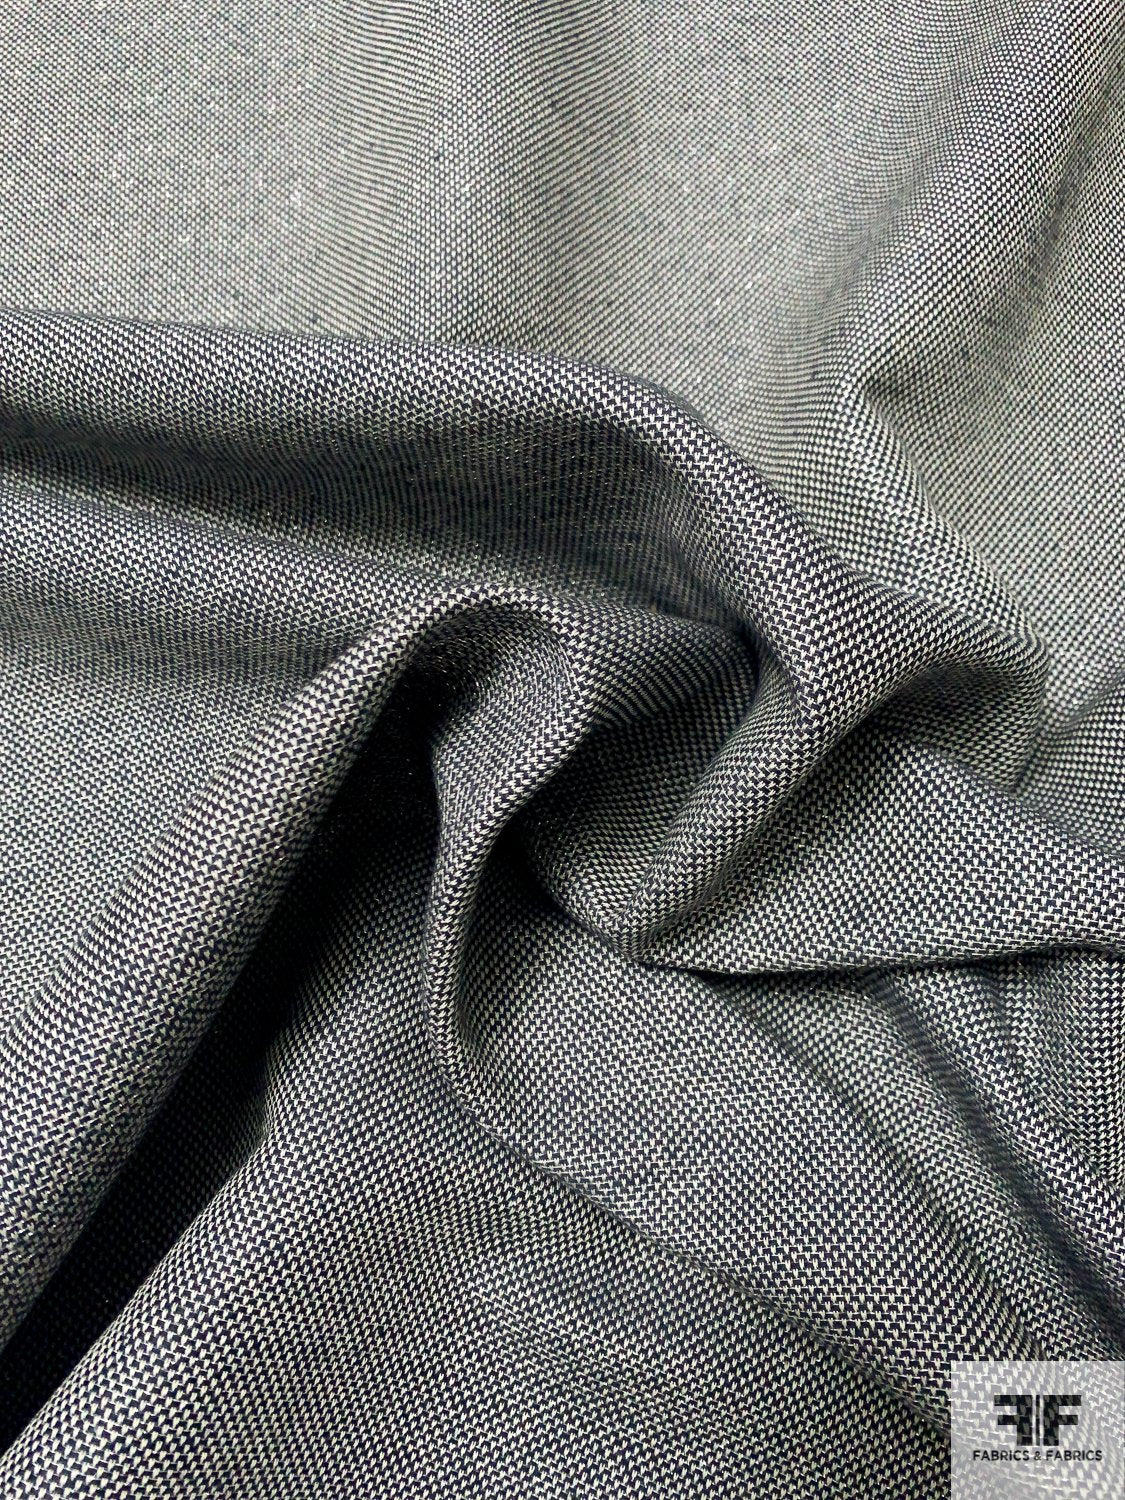 Woven Cotton Linen Suiting with Silver Lurex - Navy / Off-White